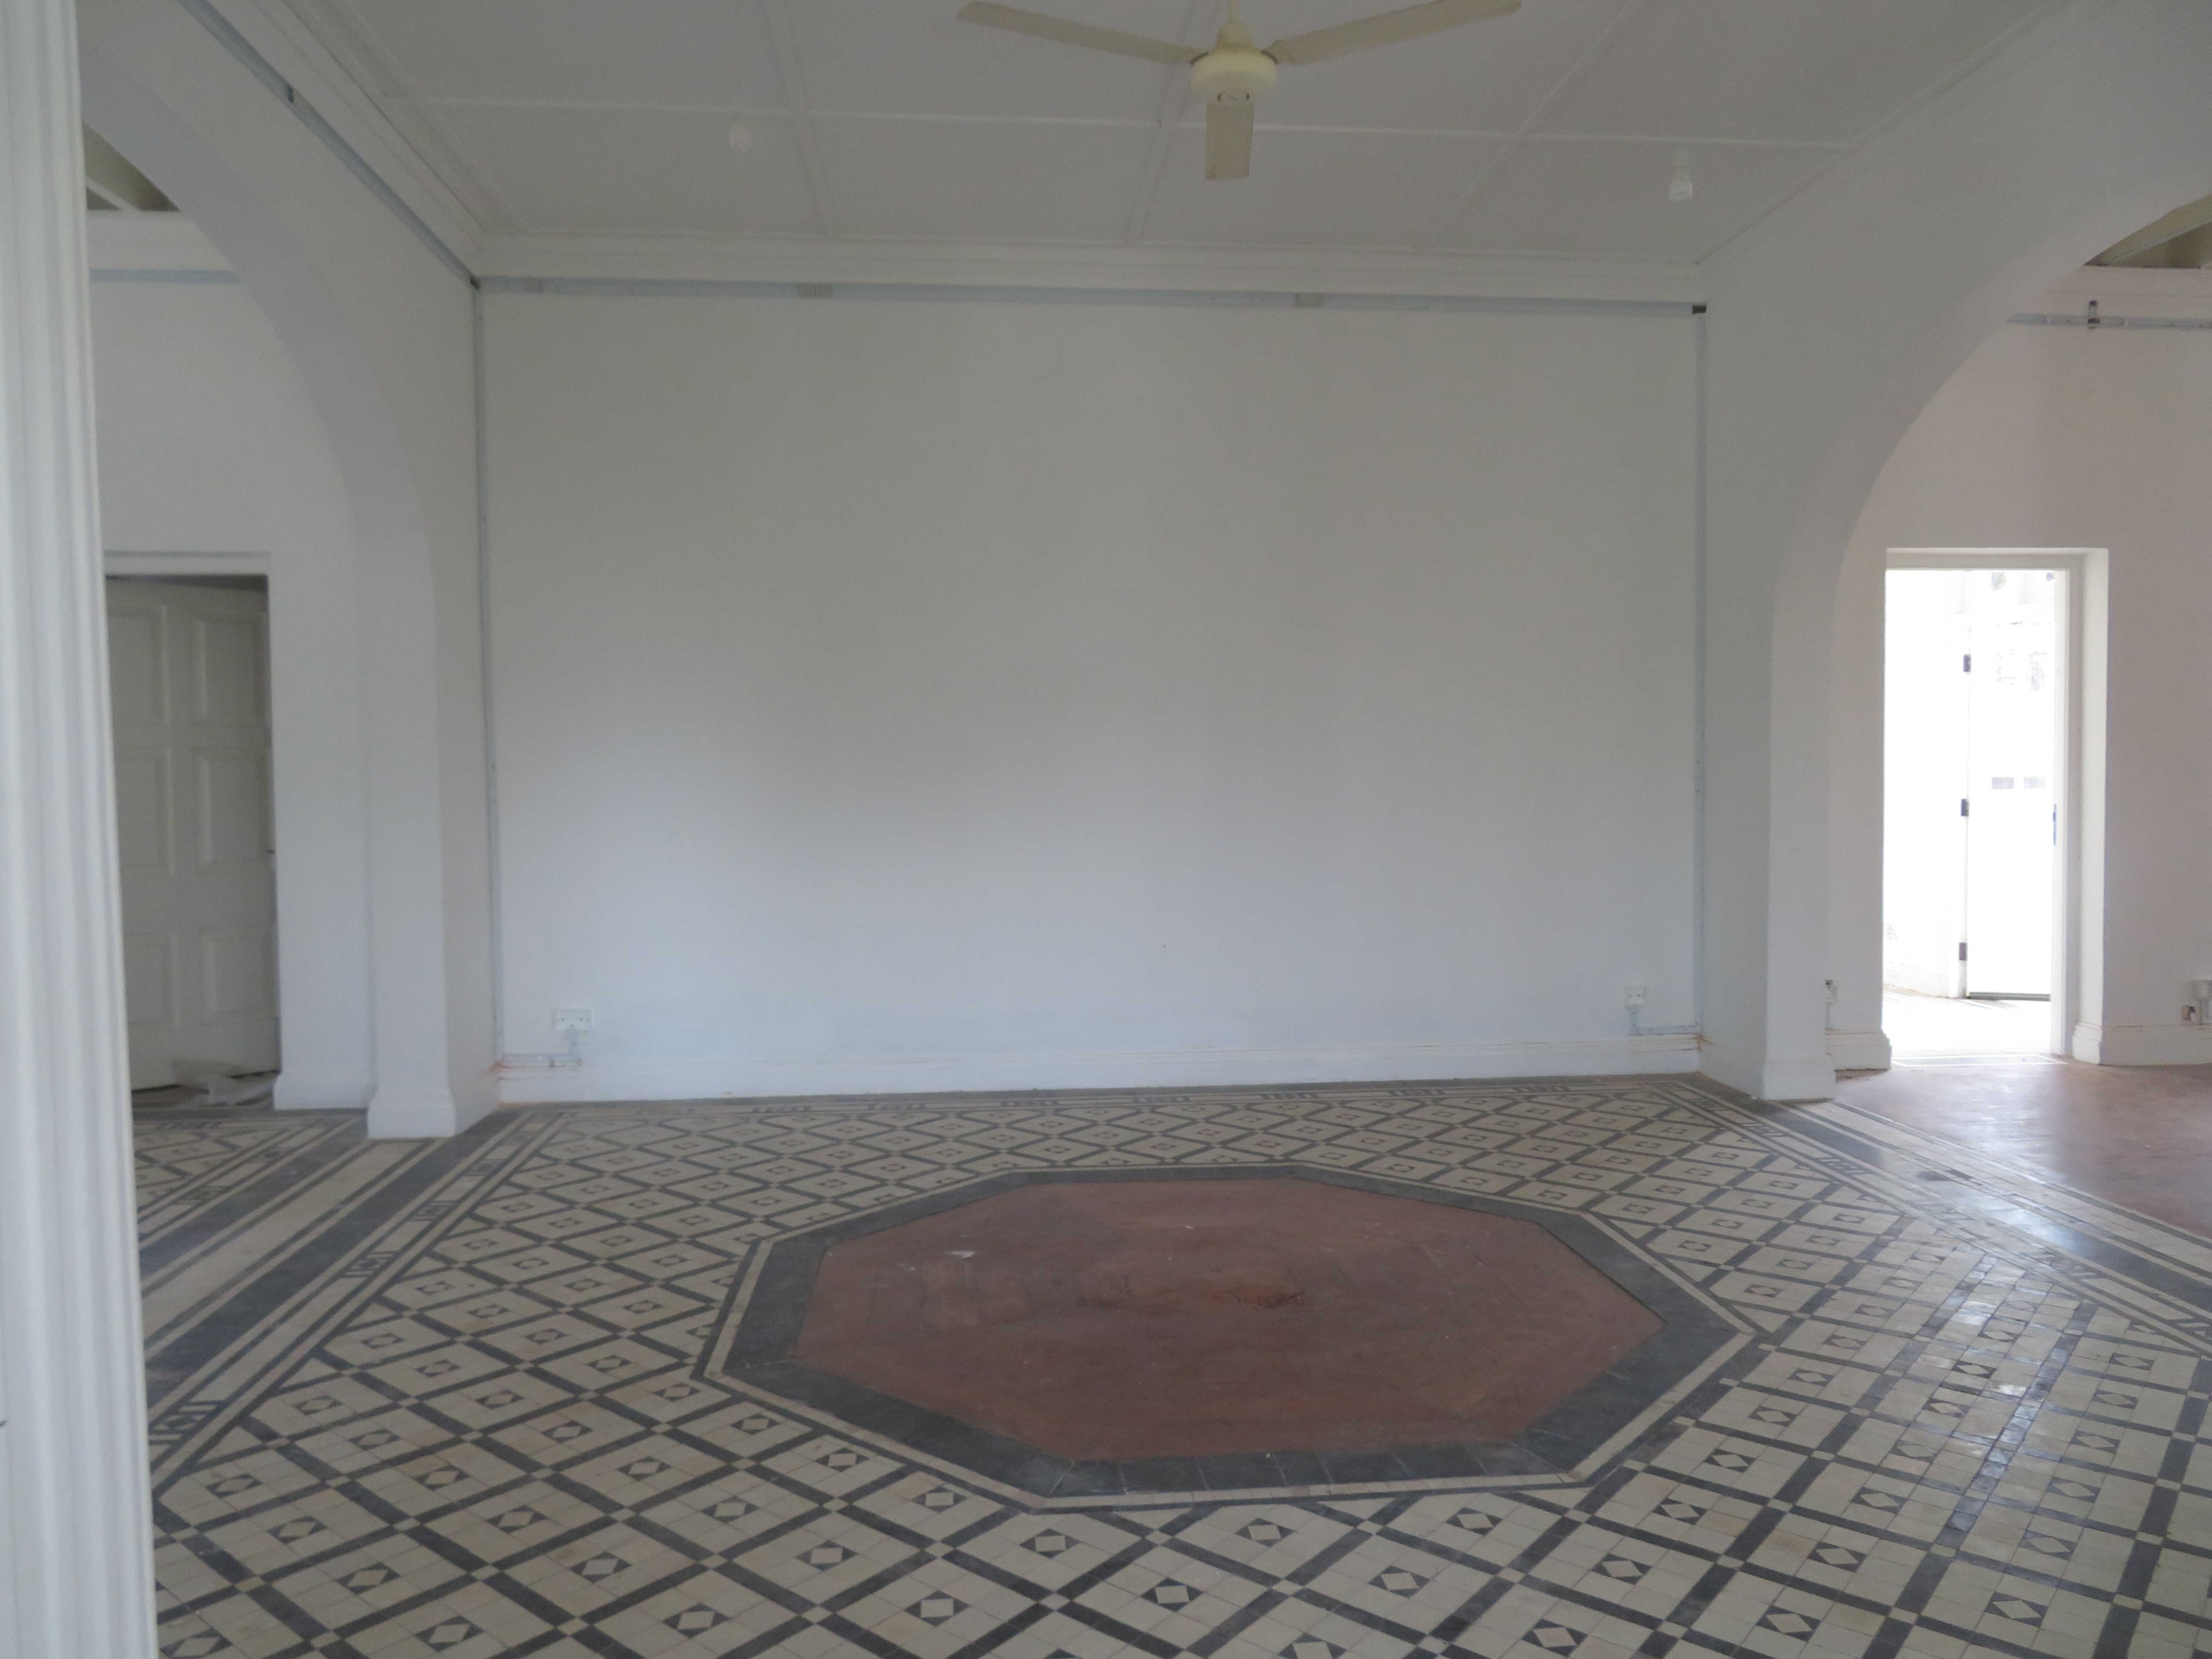 Timber architectural feature in the middle of tiled room